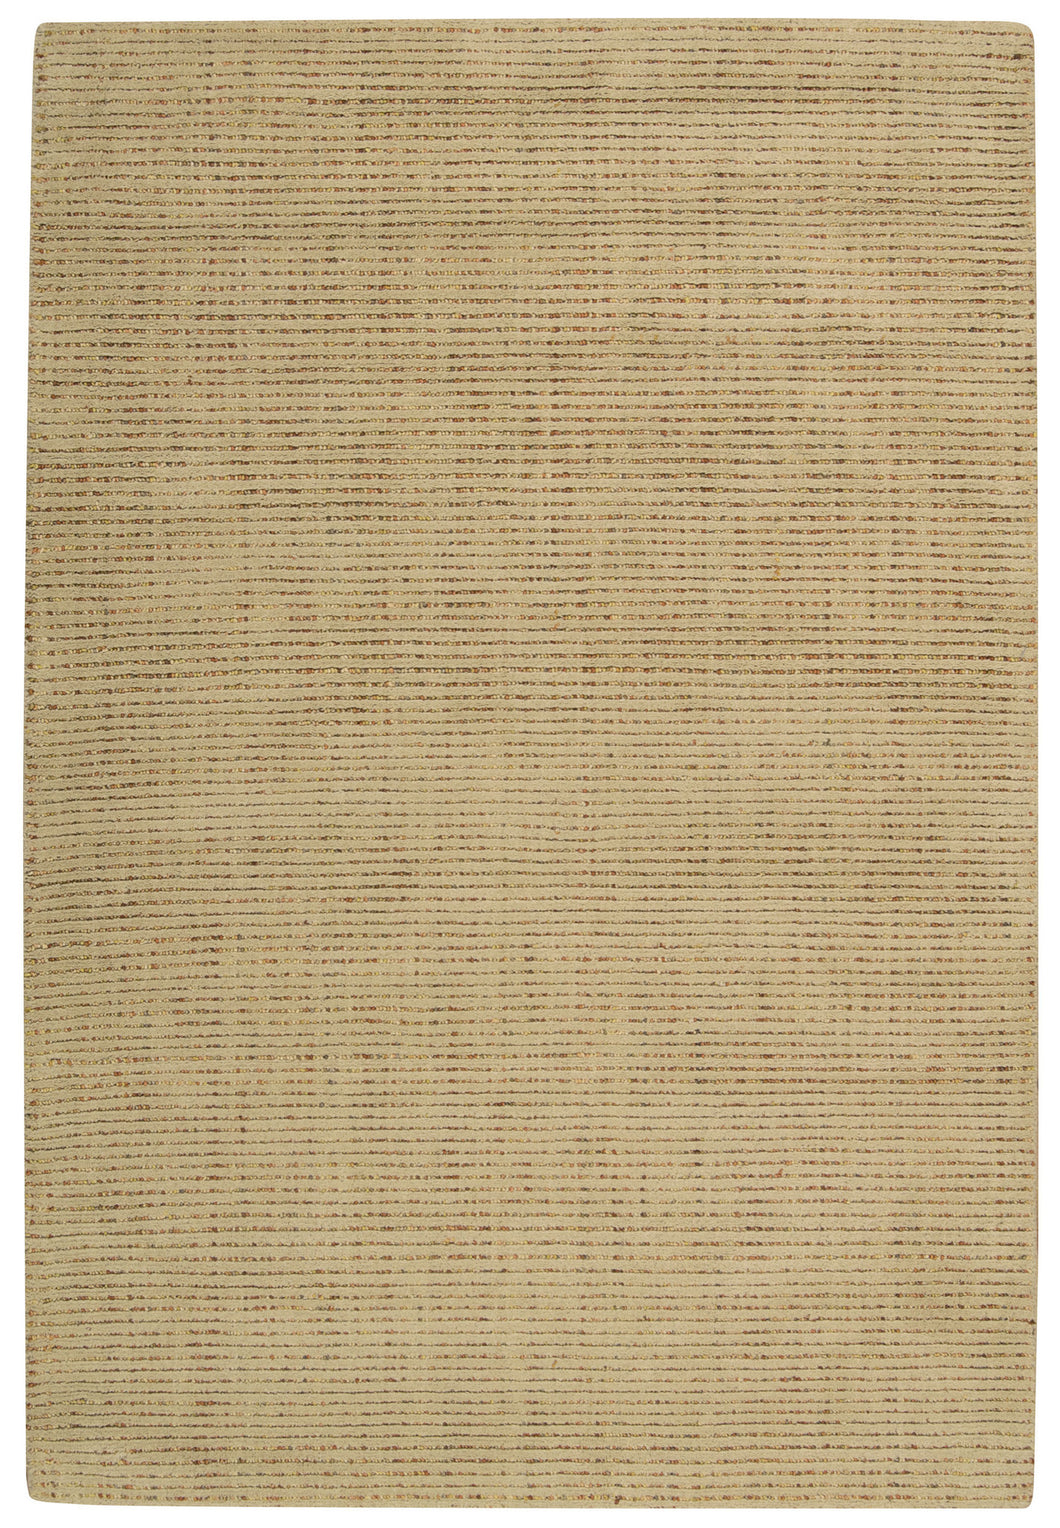 Barclay Butera Intermix Wheat Area Rug By Nourison INT03 WHEAT (Rectangle) | BOGO USA